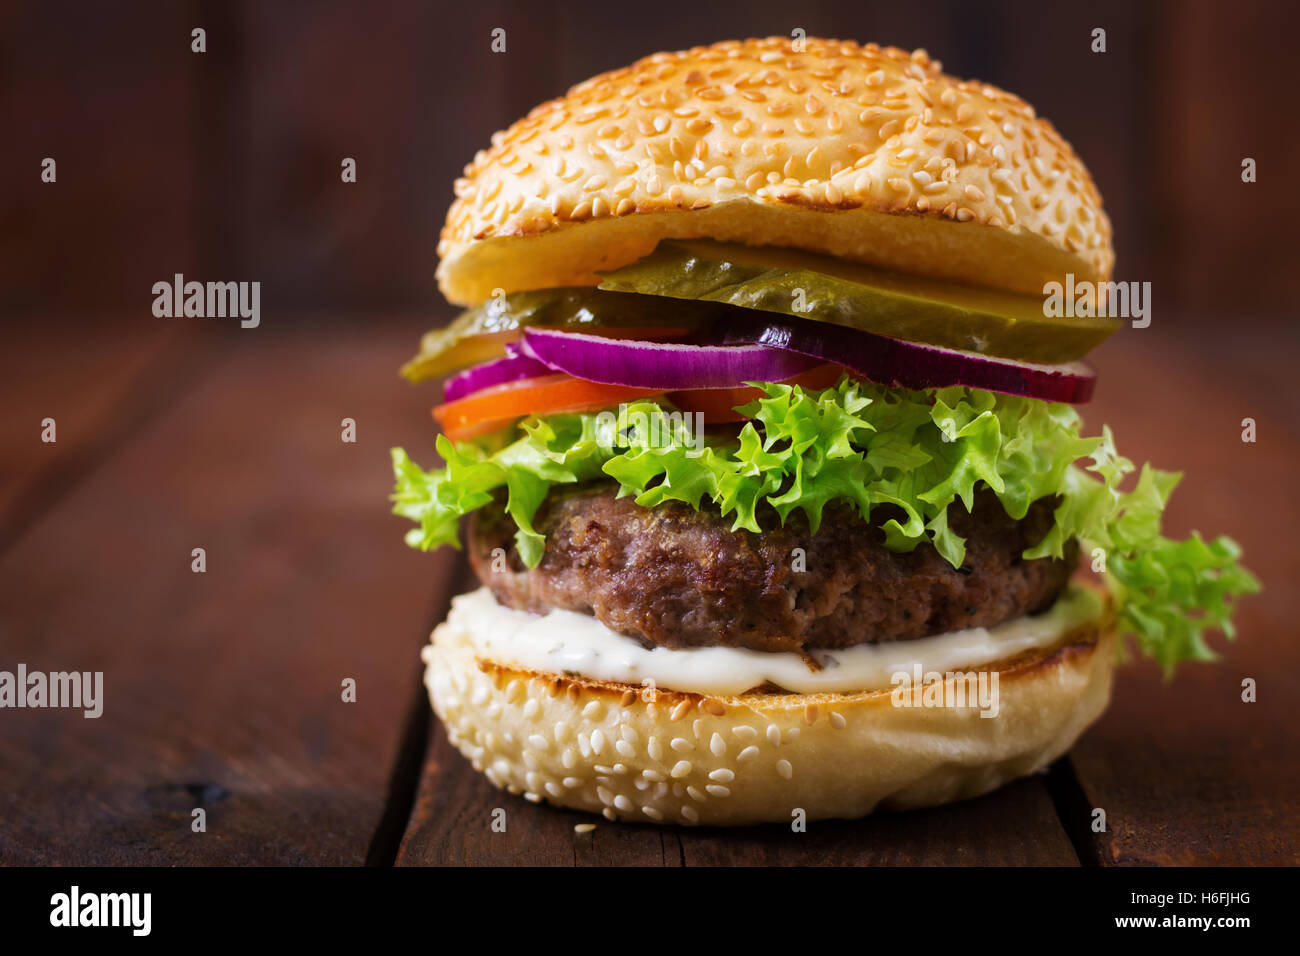 Big sandwich - hamburger burger with beef, pickles, tomato and tartar sauce on wooden background. - Stock Image